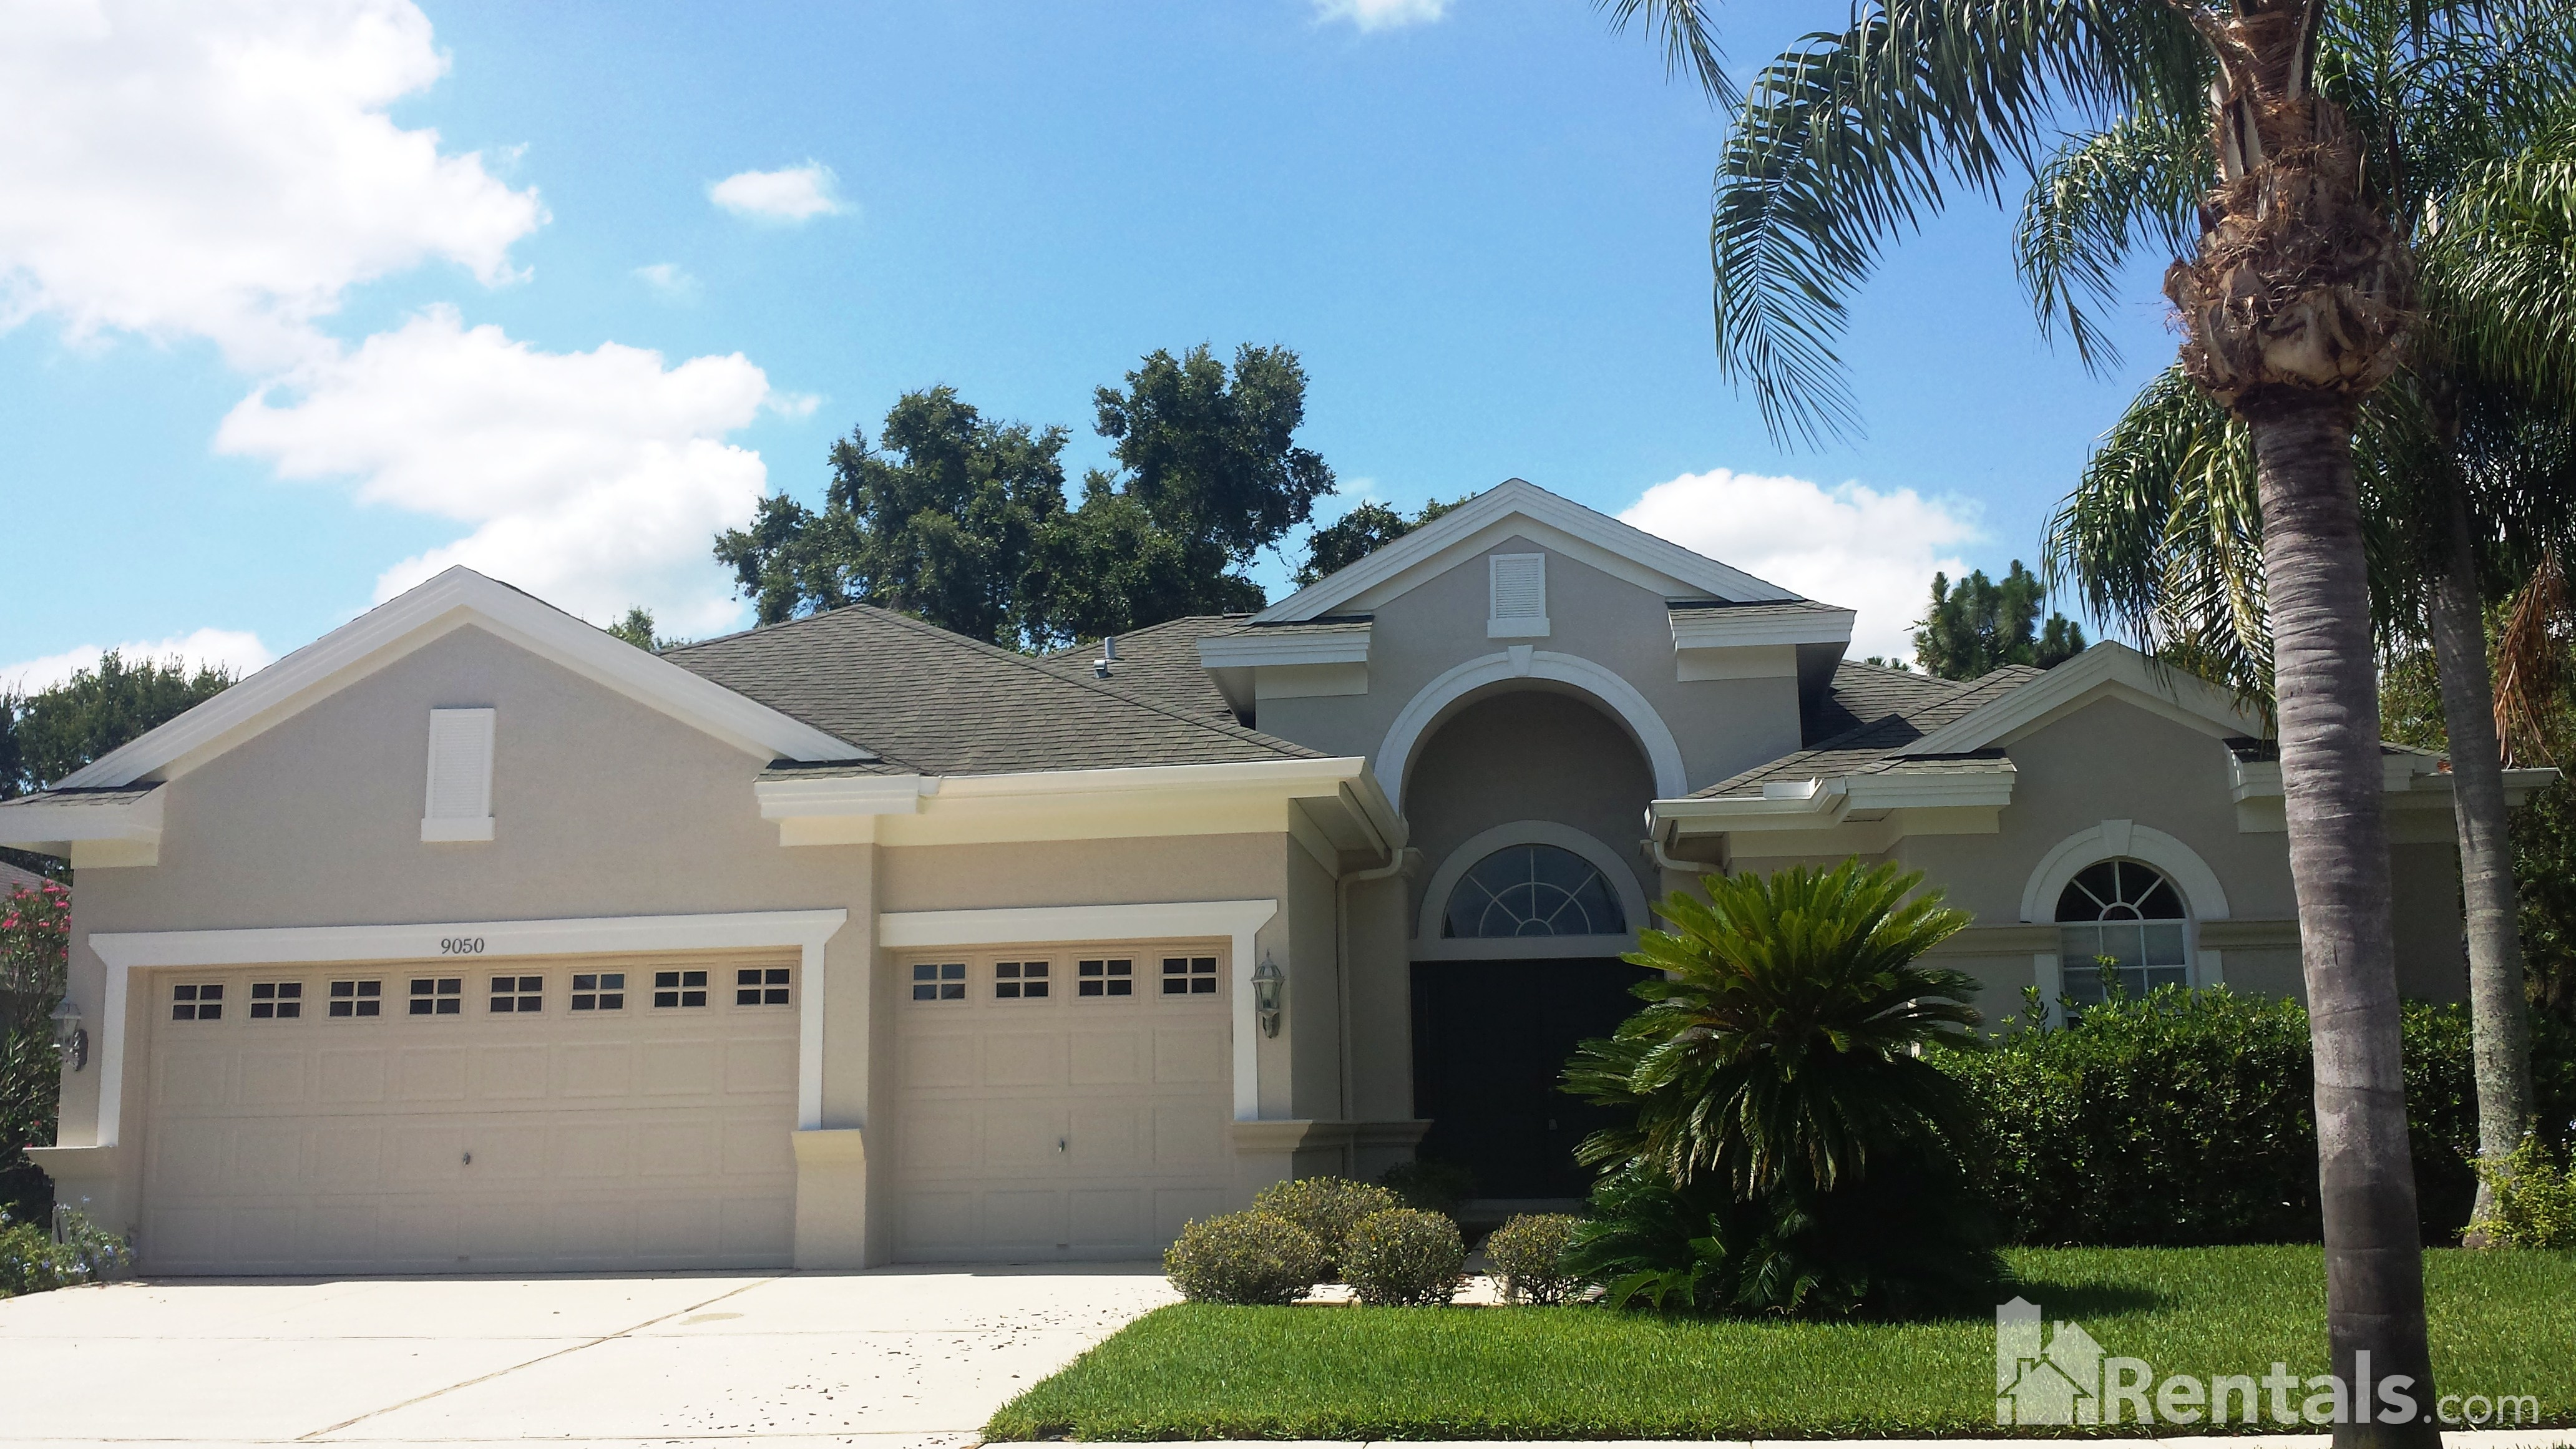 House for Rent in The Villages @ Fox Hollow-West